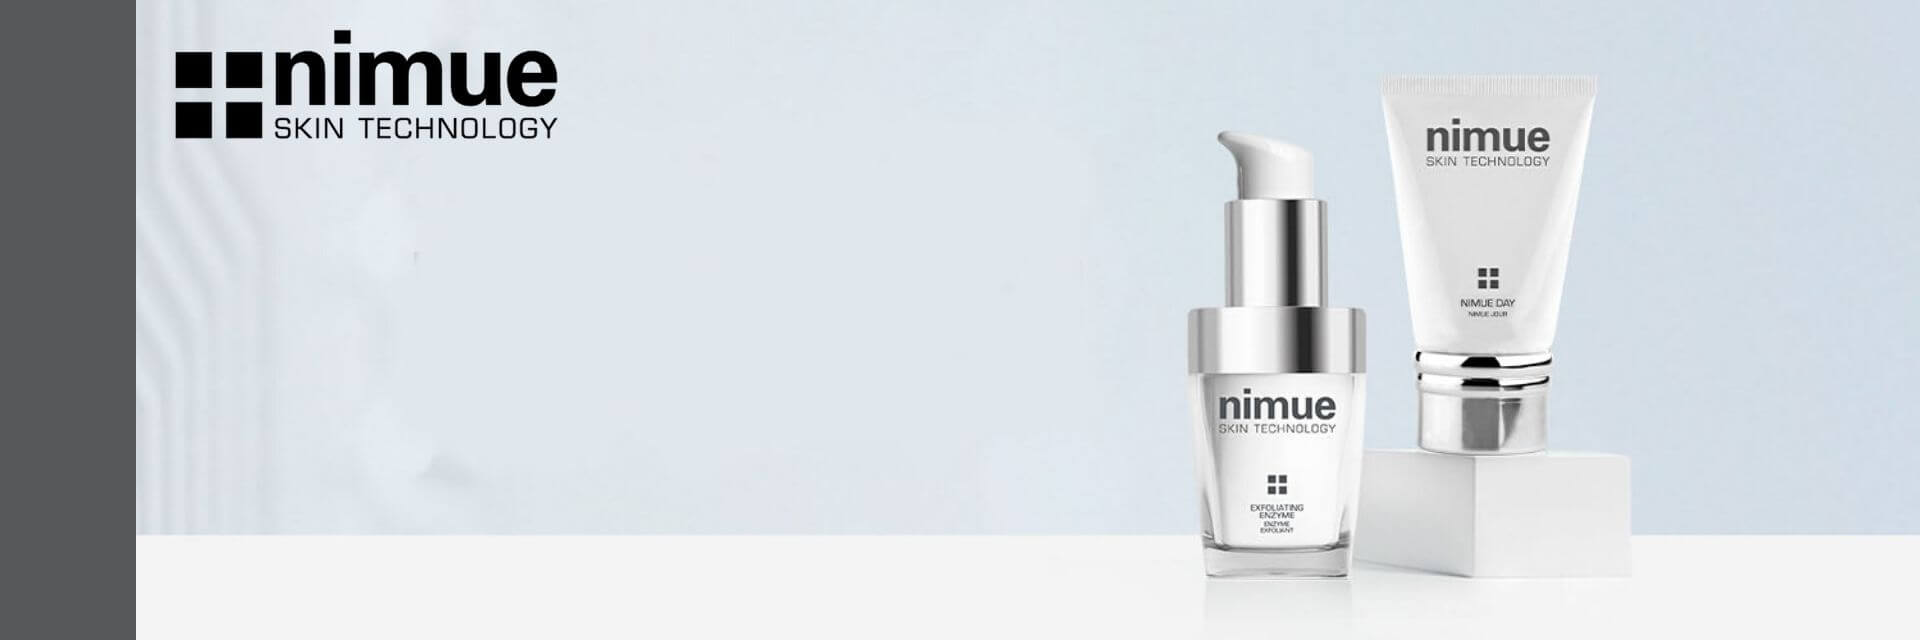 Beauty Lies Within Nimue Skin Technology in Christchurch